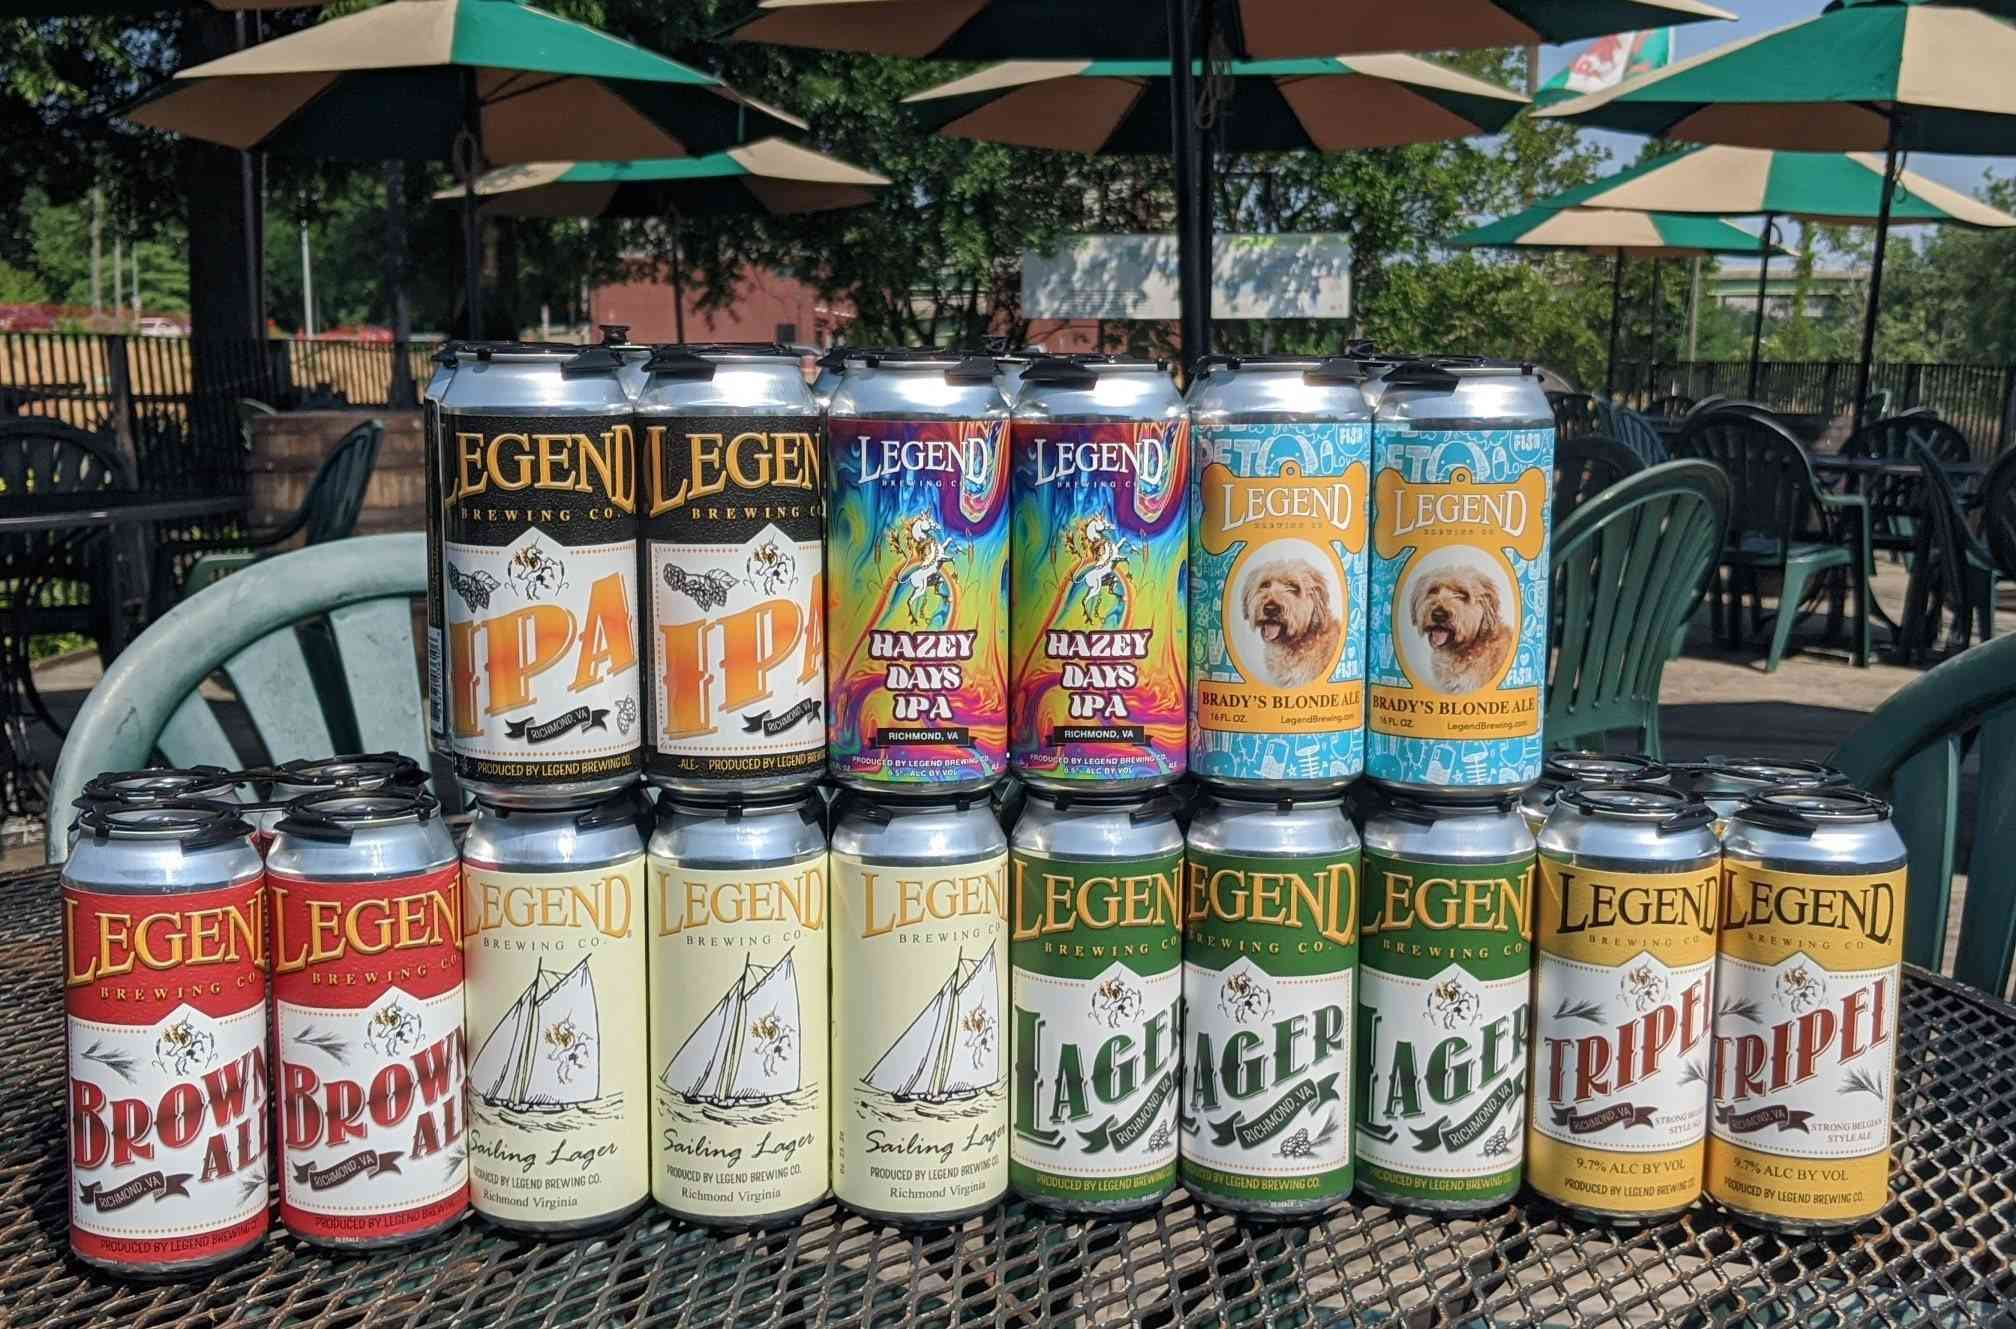 Several cans of beer